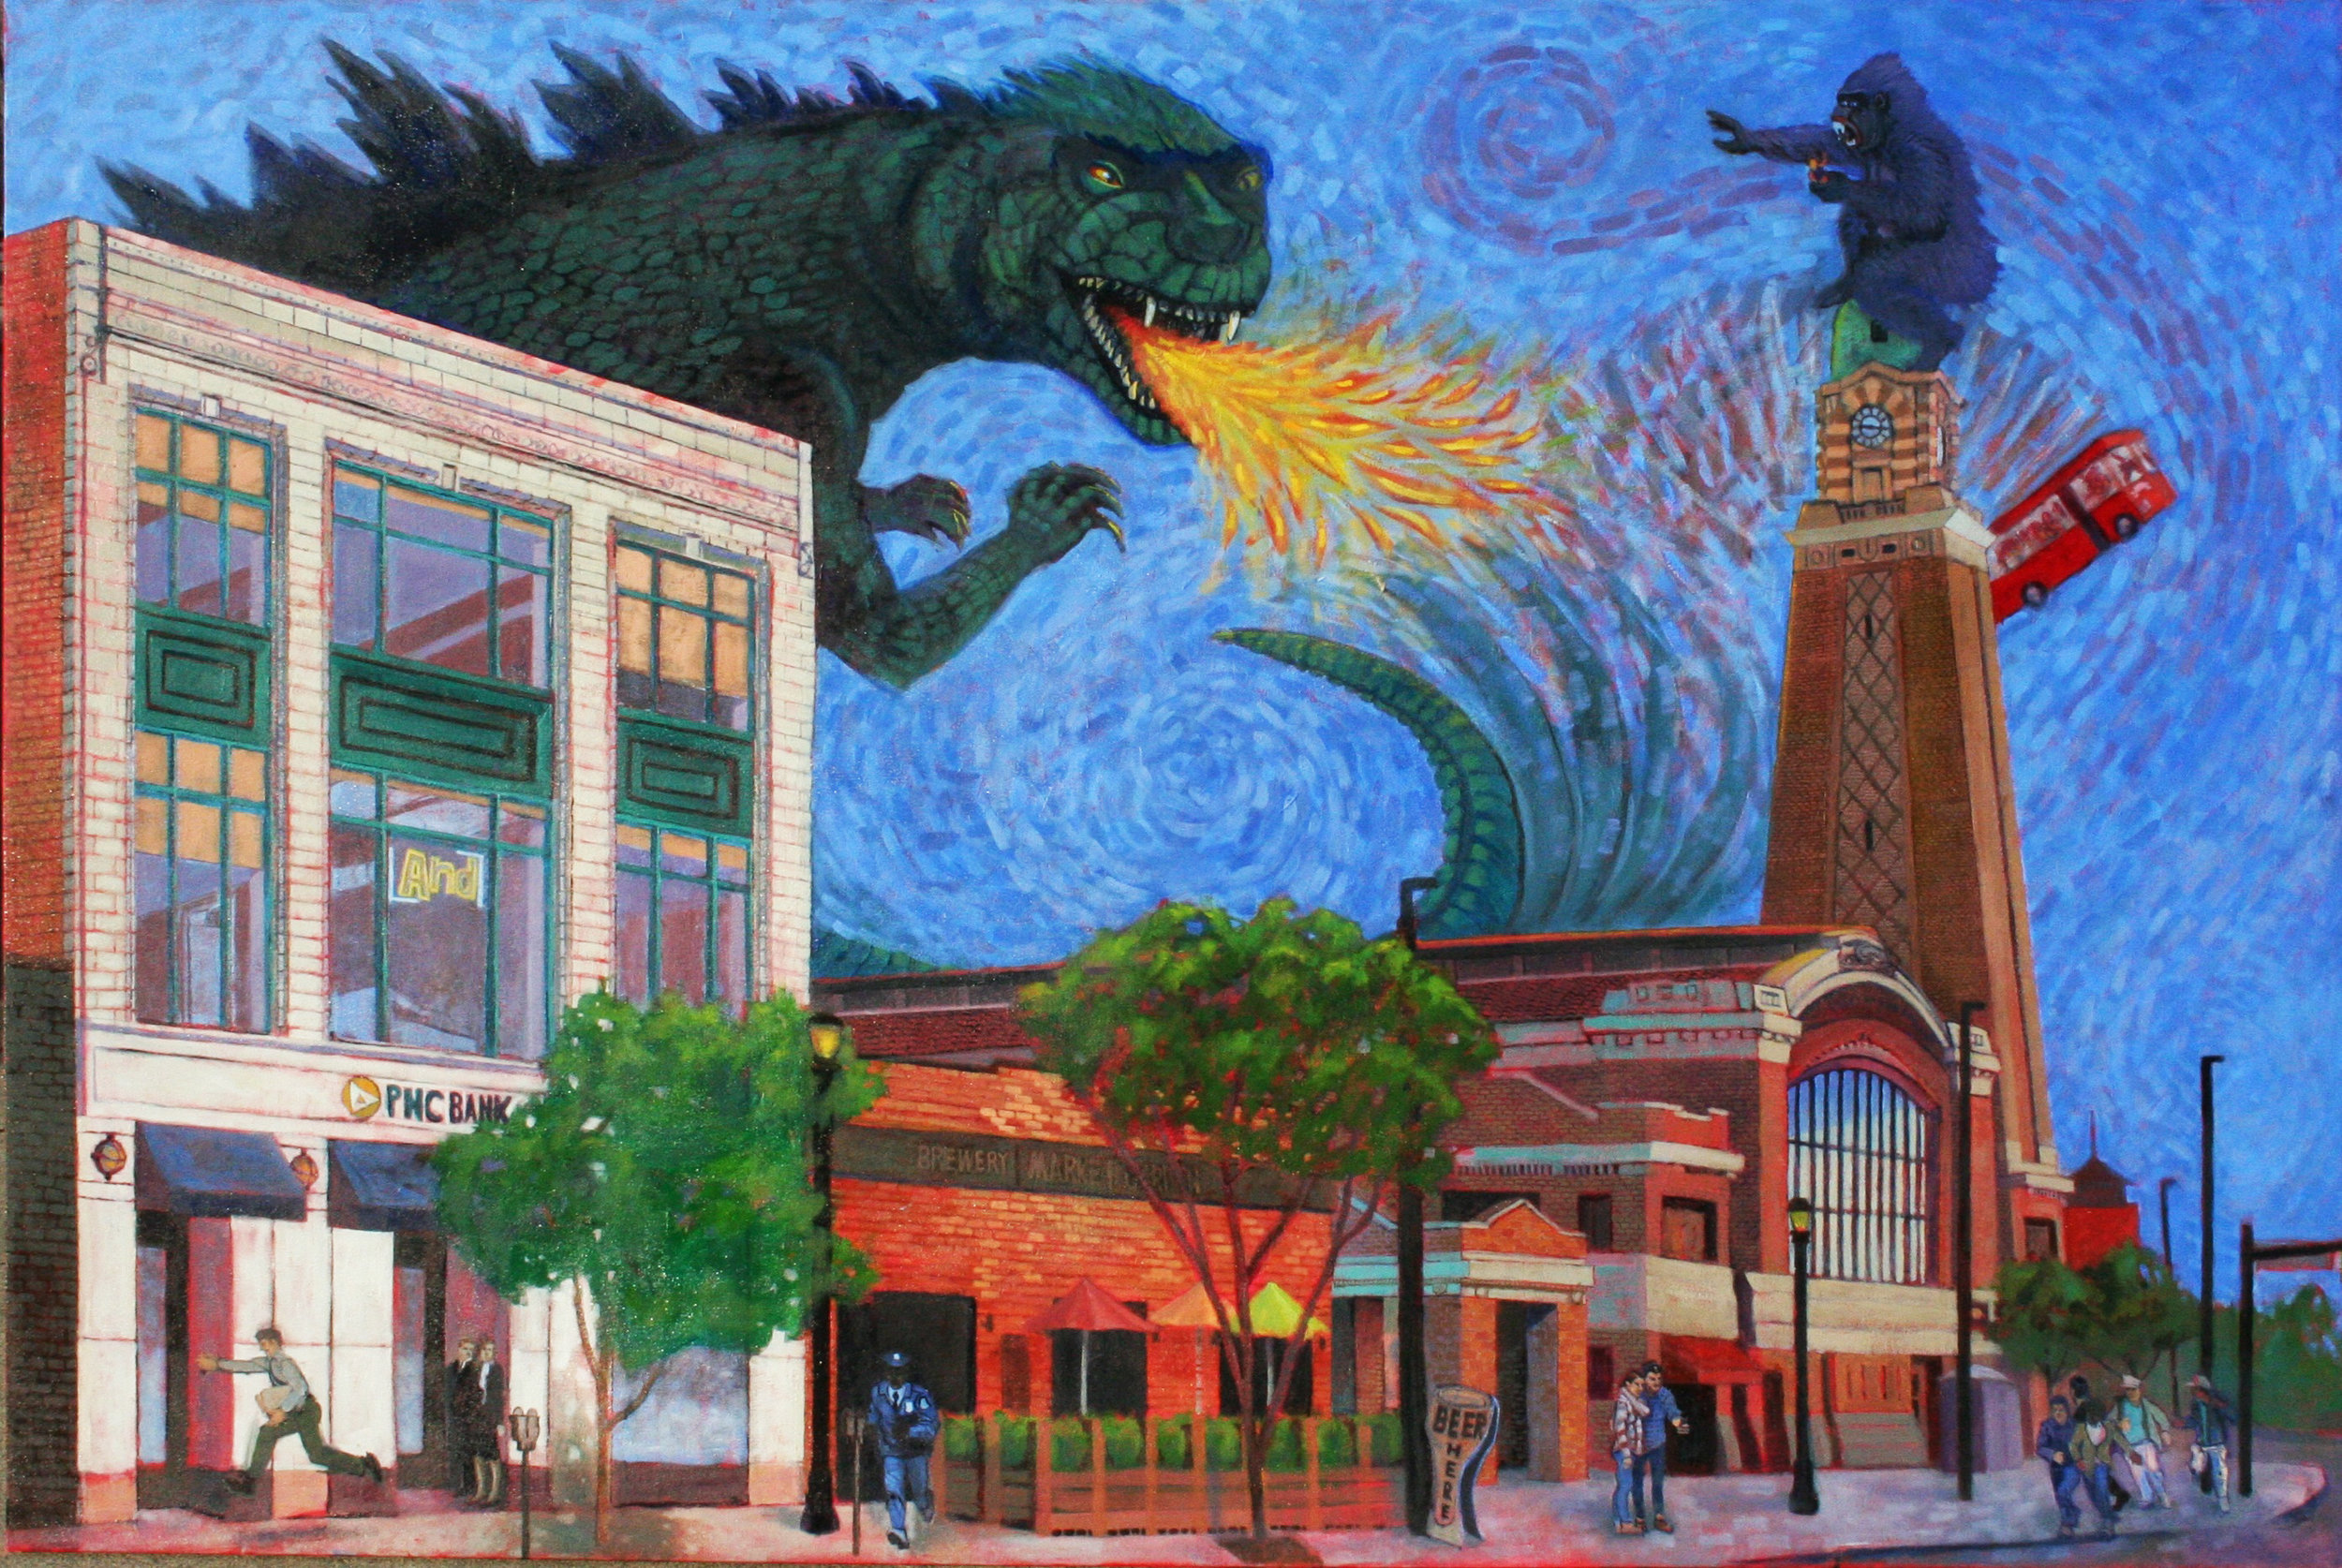 West Side Market in Cleveland Ohio. Painted from drawings done across the street.